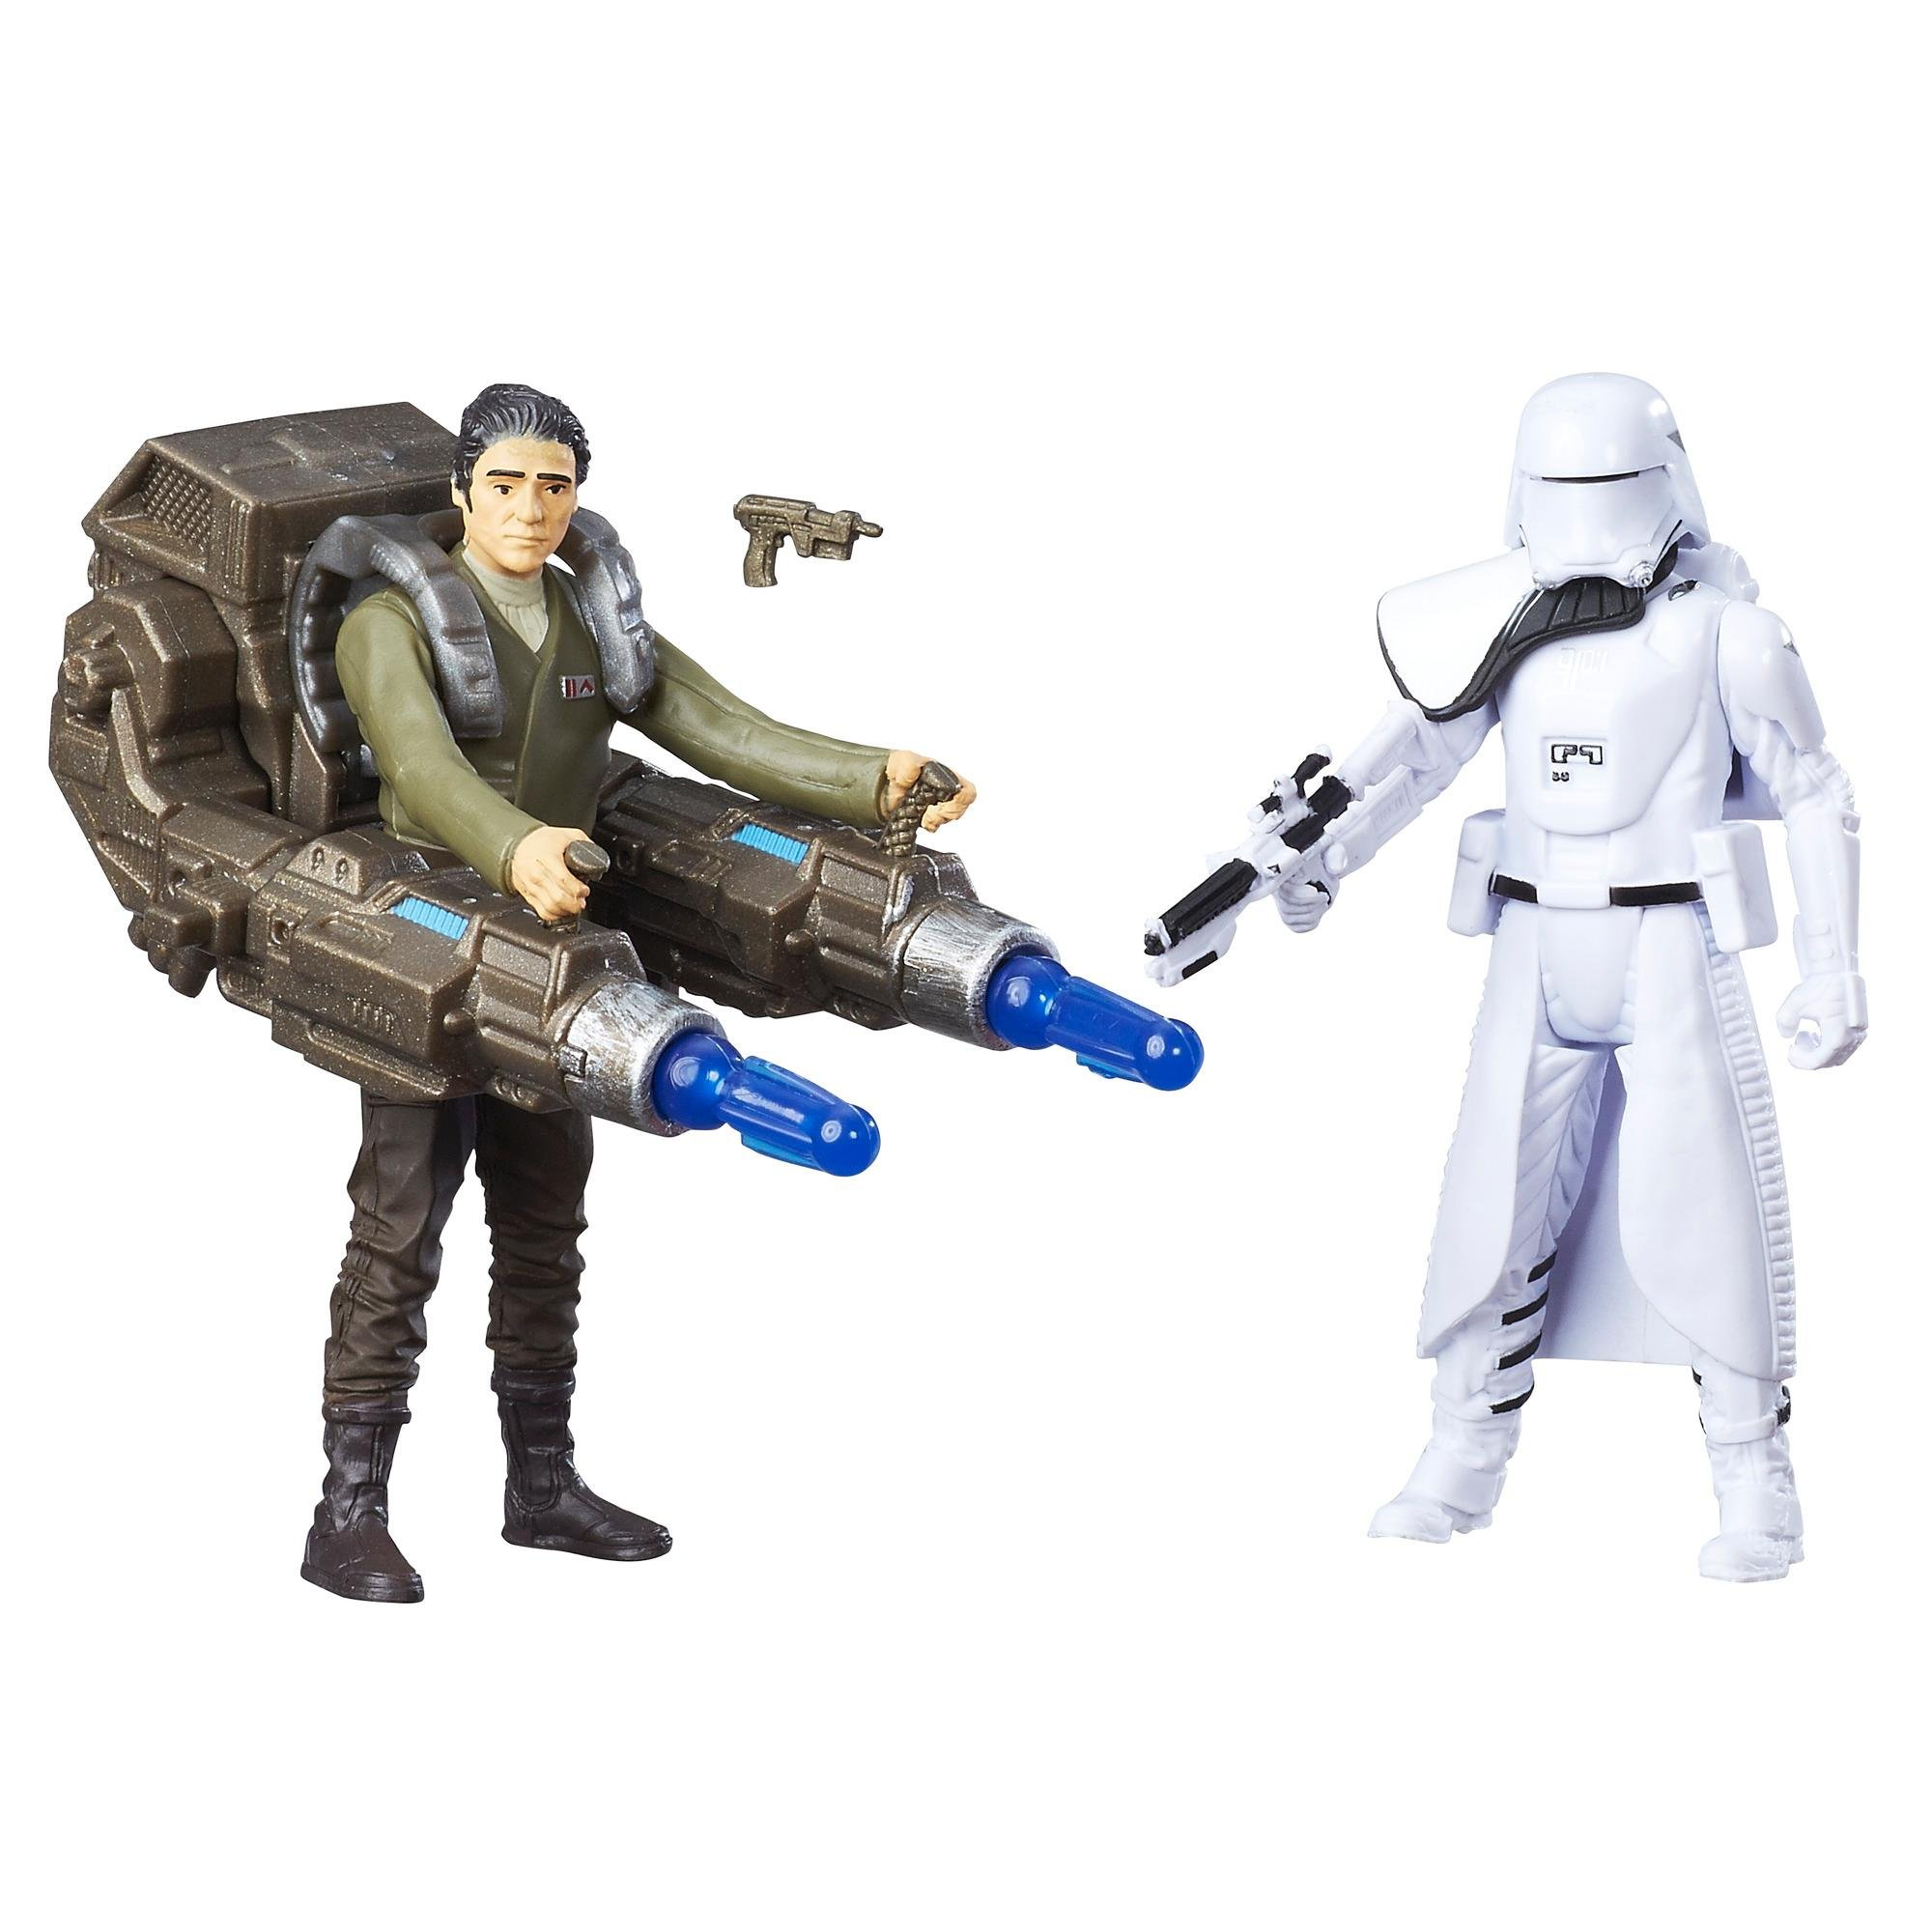 figurine deluxe star wars the force awakens - poe dameron si snowtrooper al primului ordin